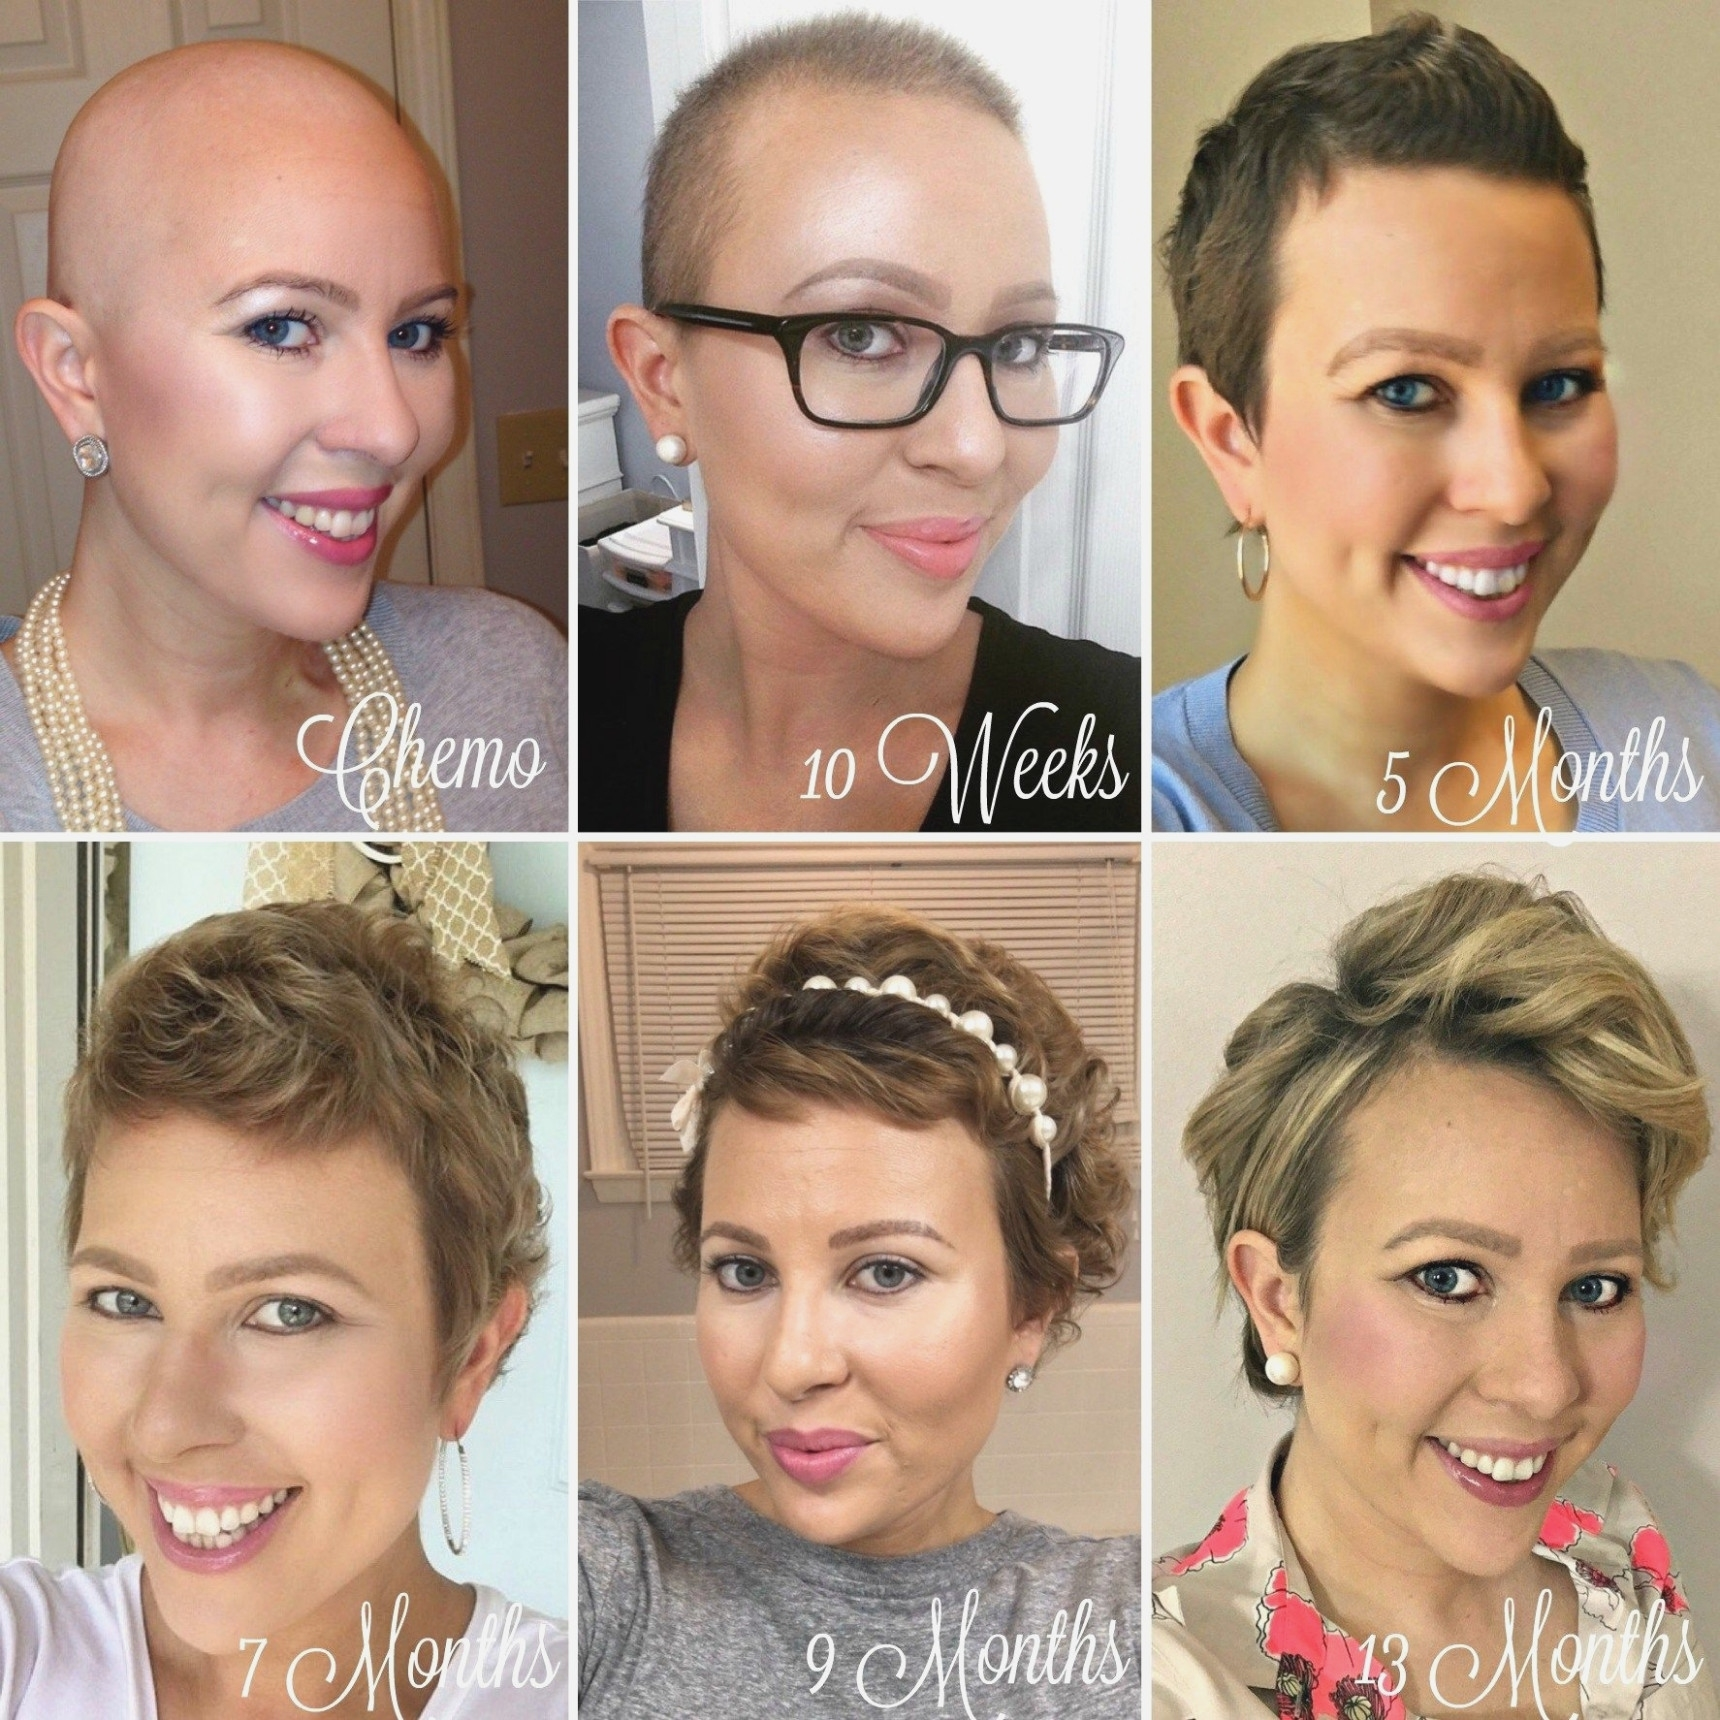 Reasons Why Short Haircuts For Cancer | The Hairstyles Ideas within Haircuts For Cancer Patients